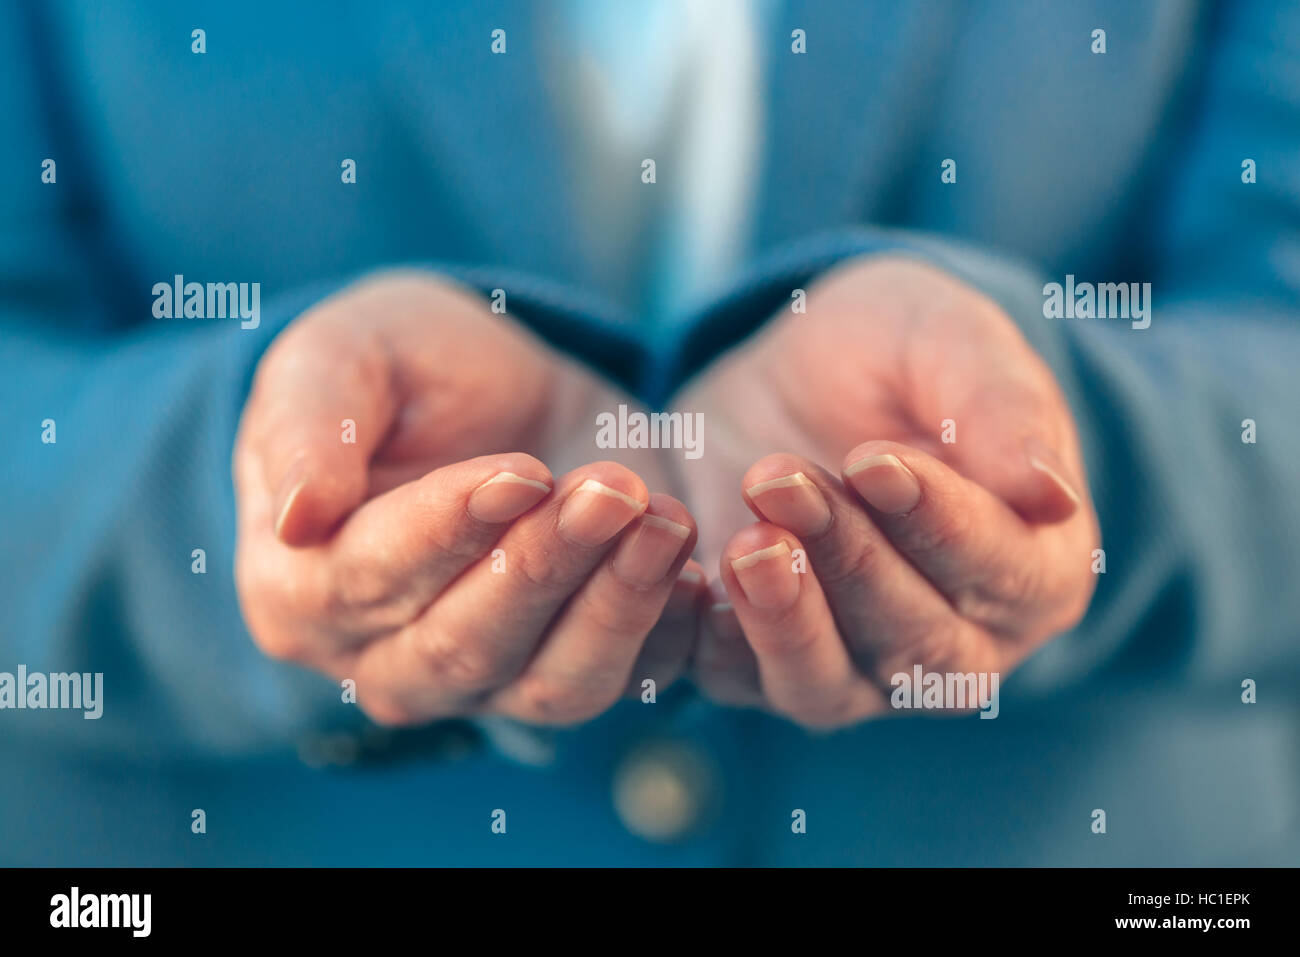 Businesswoman with open palms of her hands asking for something - Stock Image